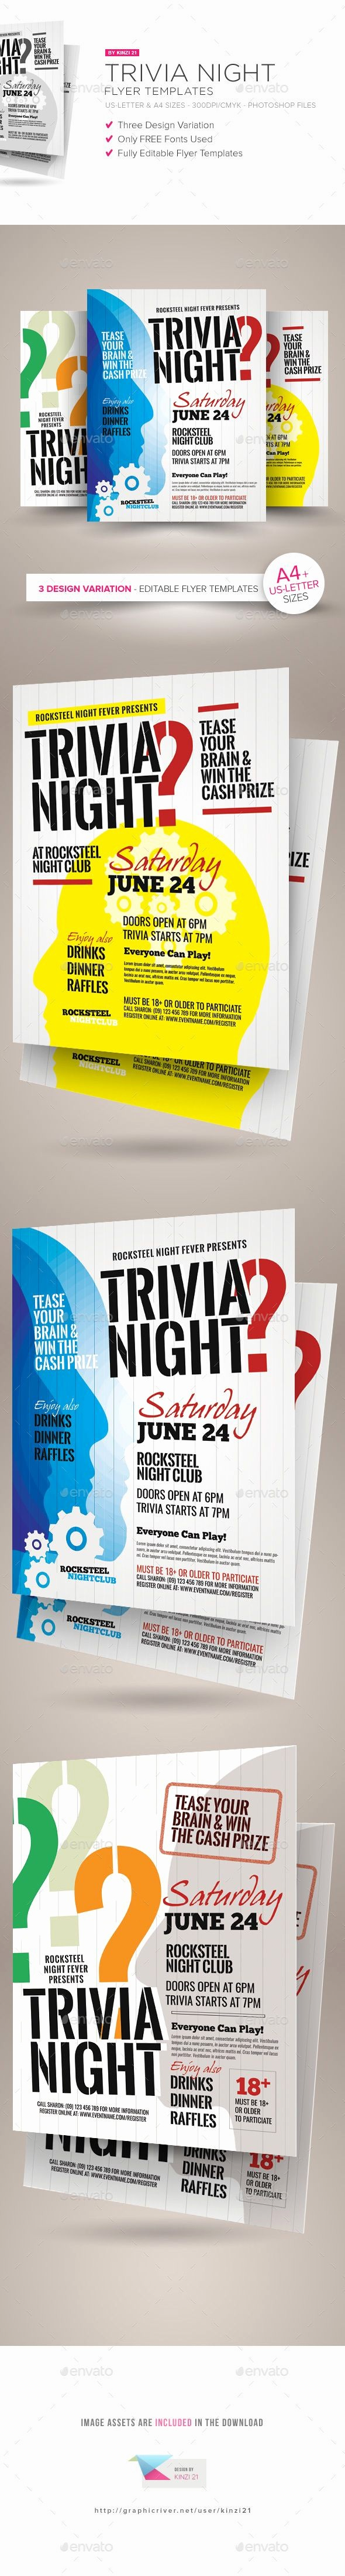 Trivia Night Flyer Template Free Elegant Trivia Night Flyer Templates